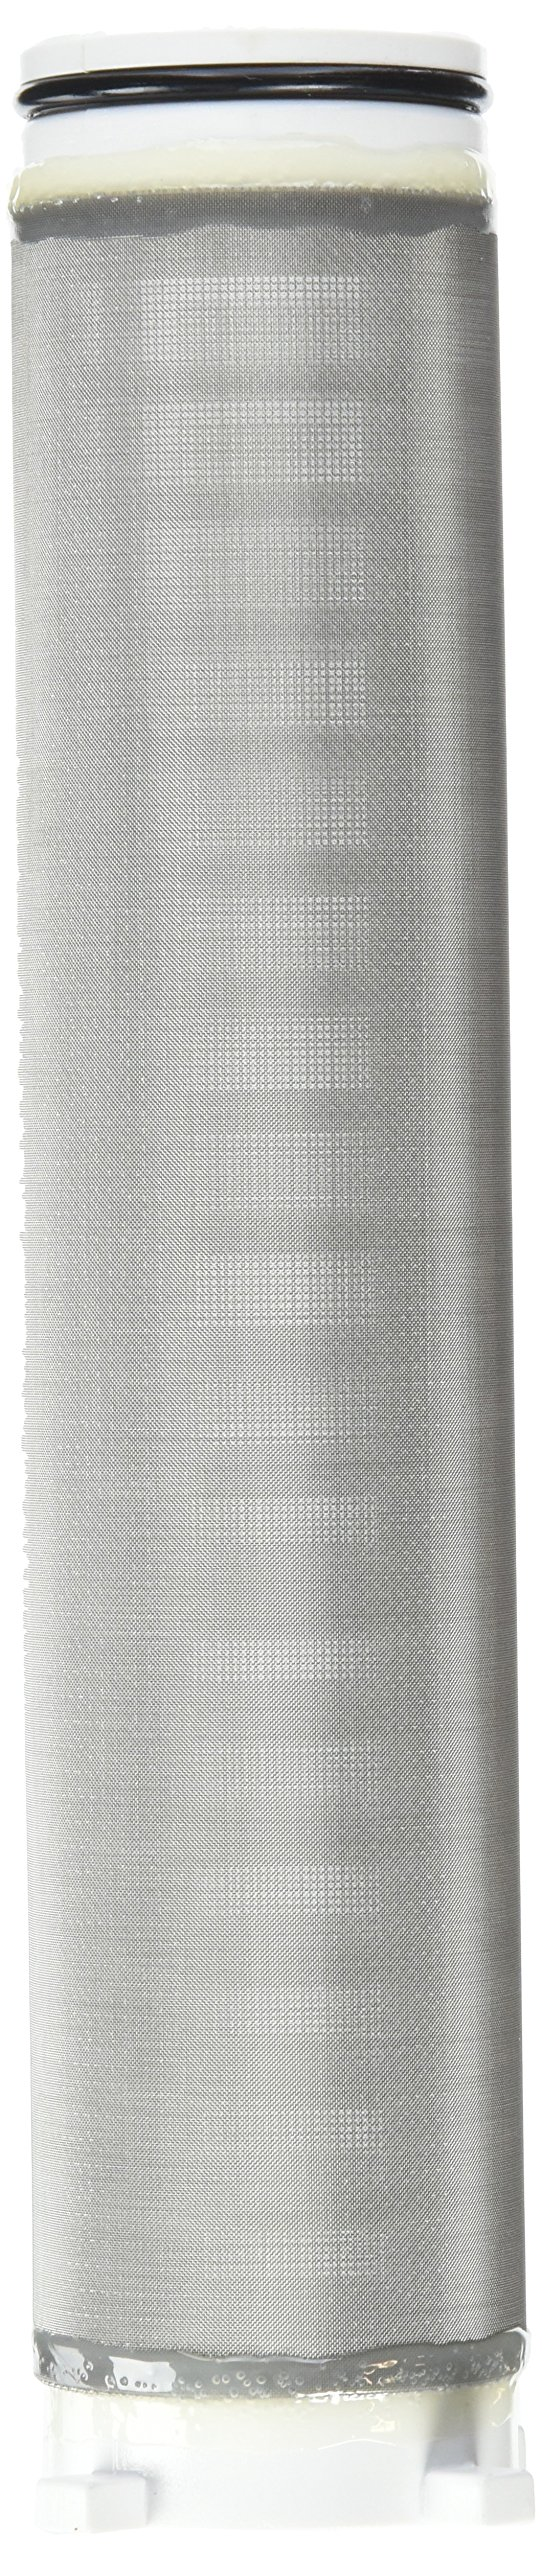 Rusco FS-2-100SS Spin-Down Steel Replacement Filter